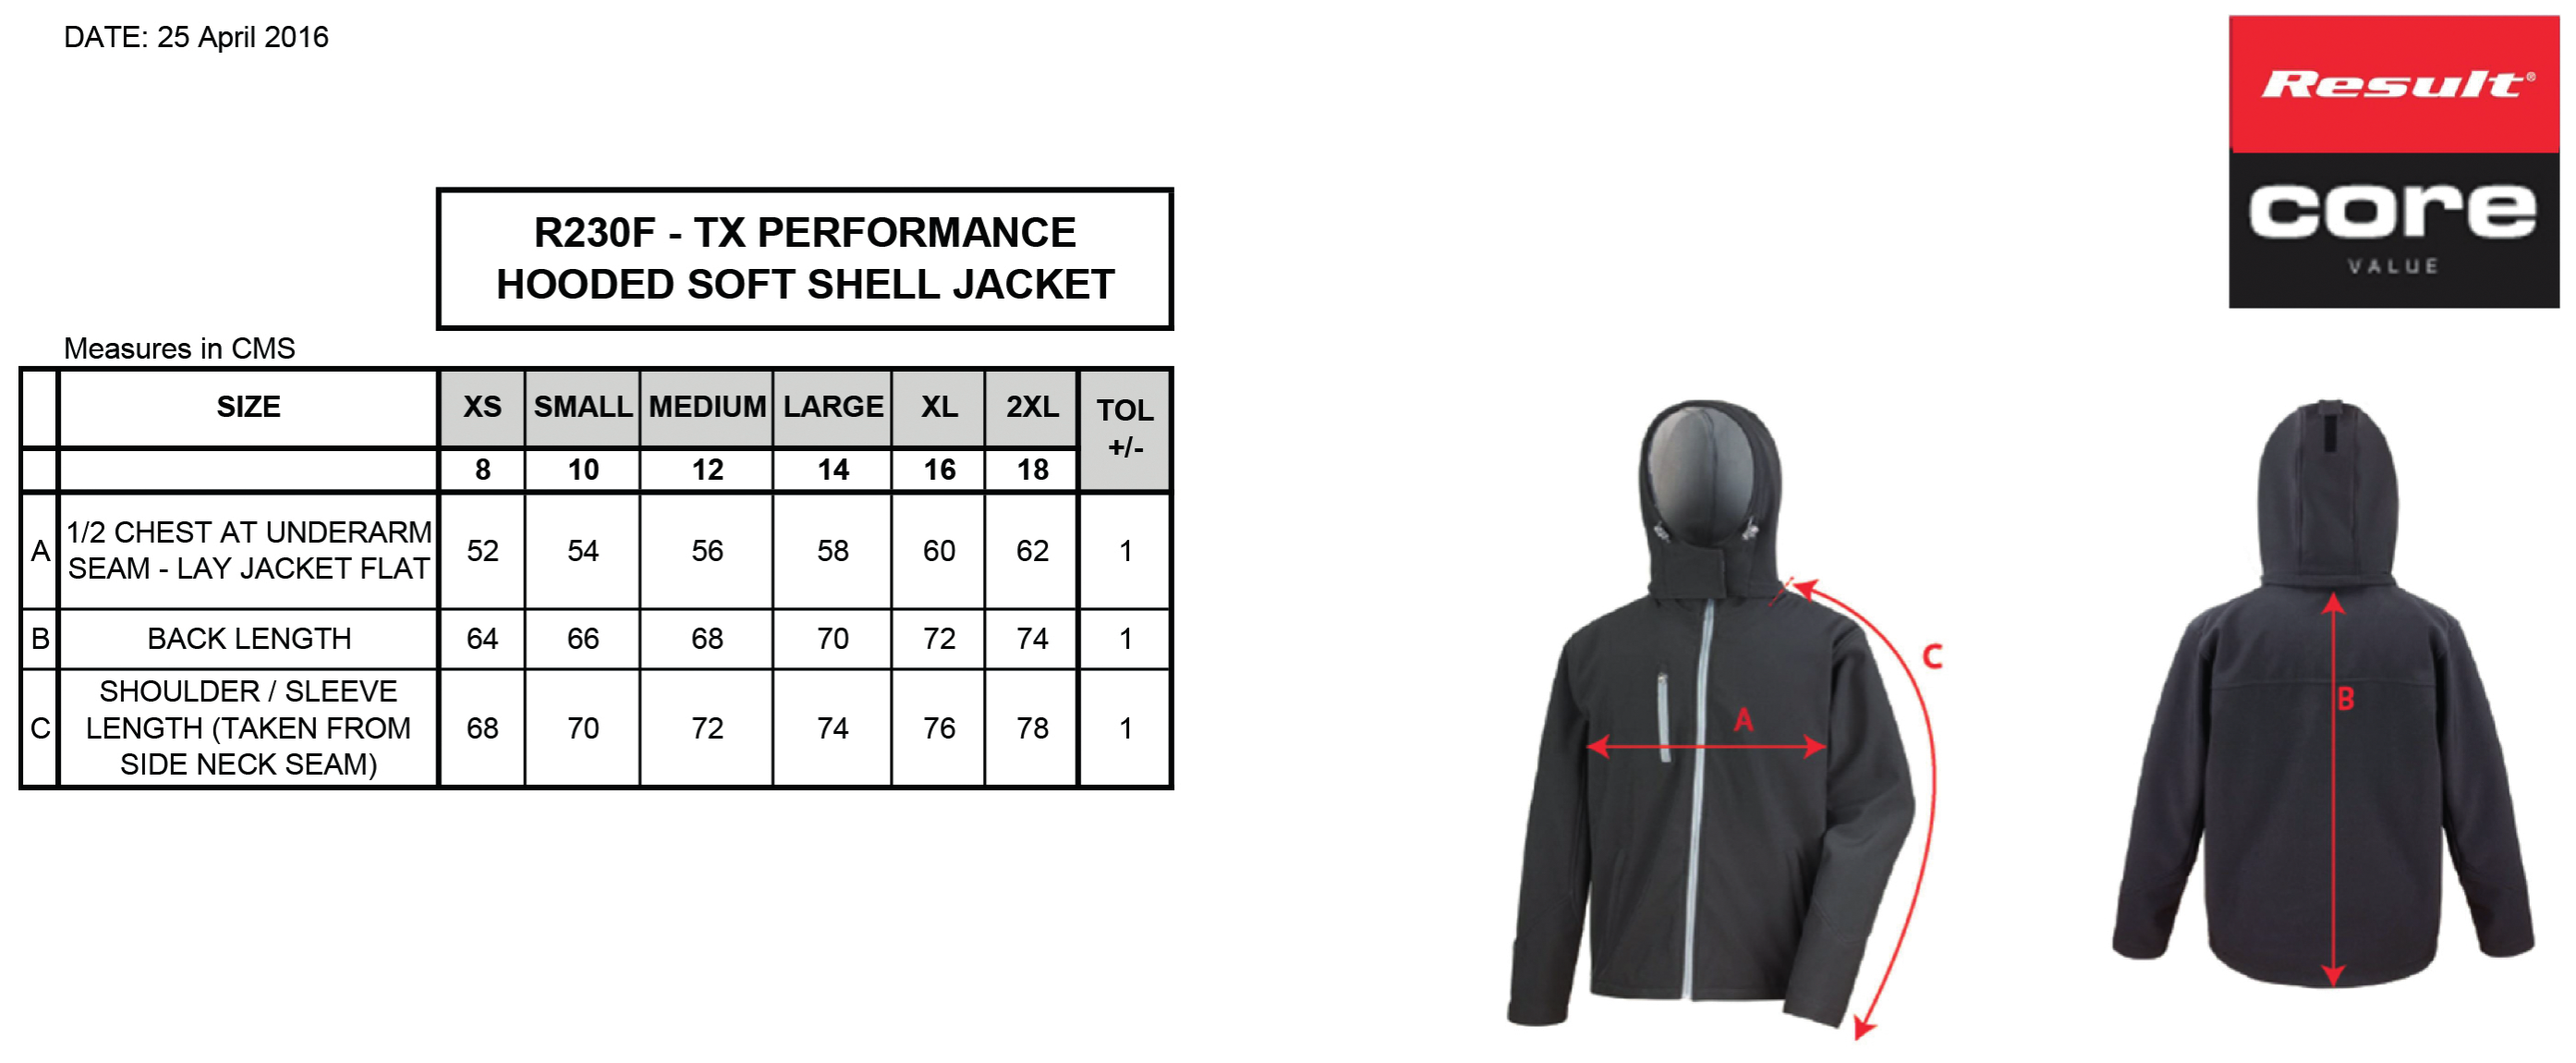 Result: Ladies TX Performance Hooded Softshell Jacket R230F